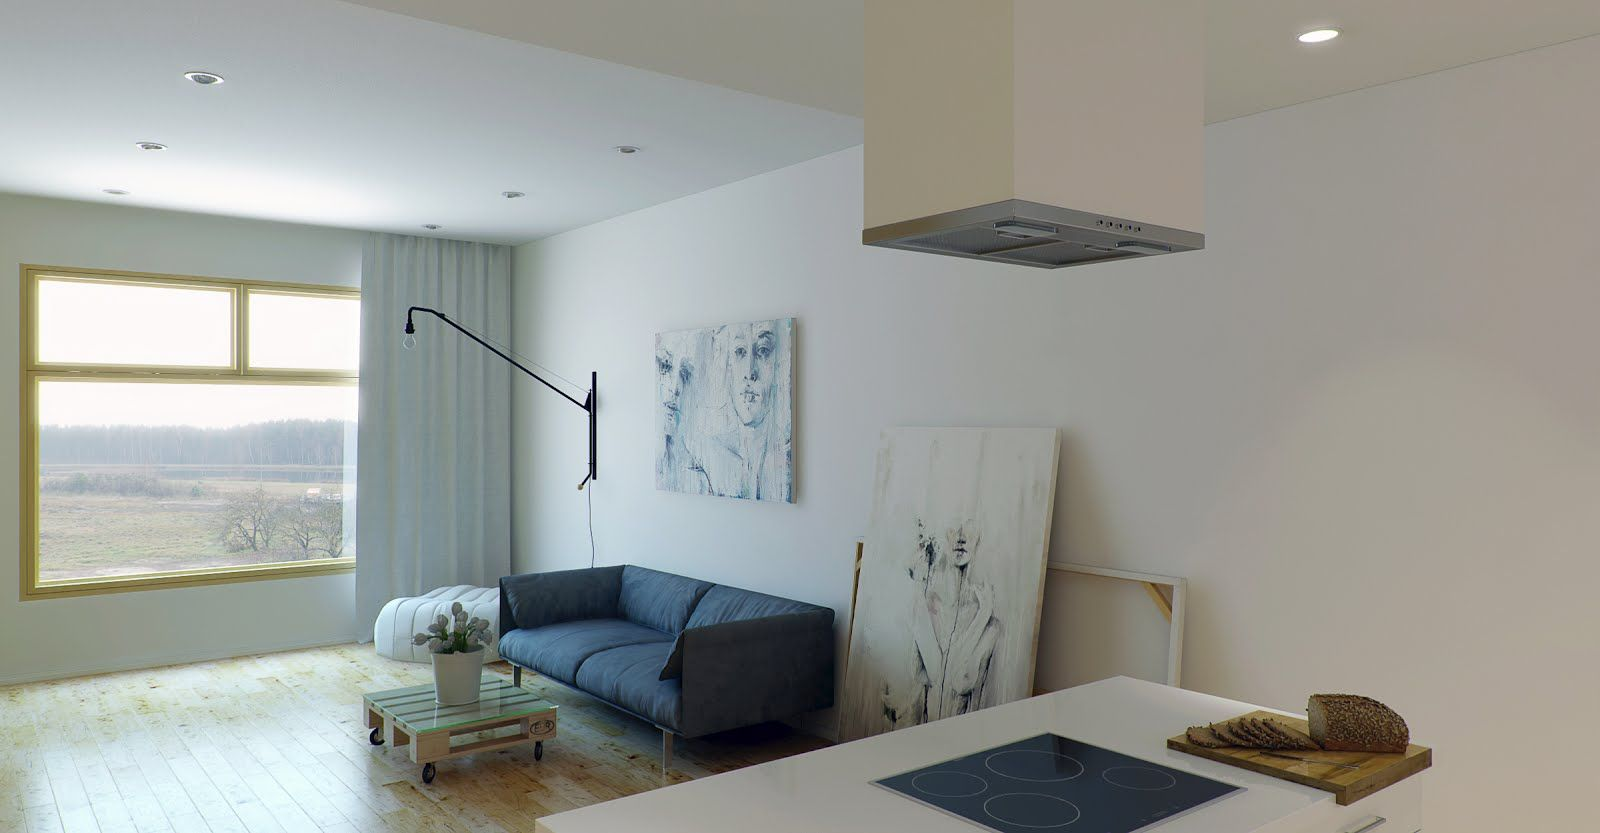 Explore Small Apartment Design and more Maintaining